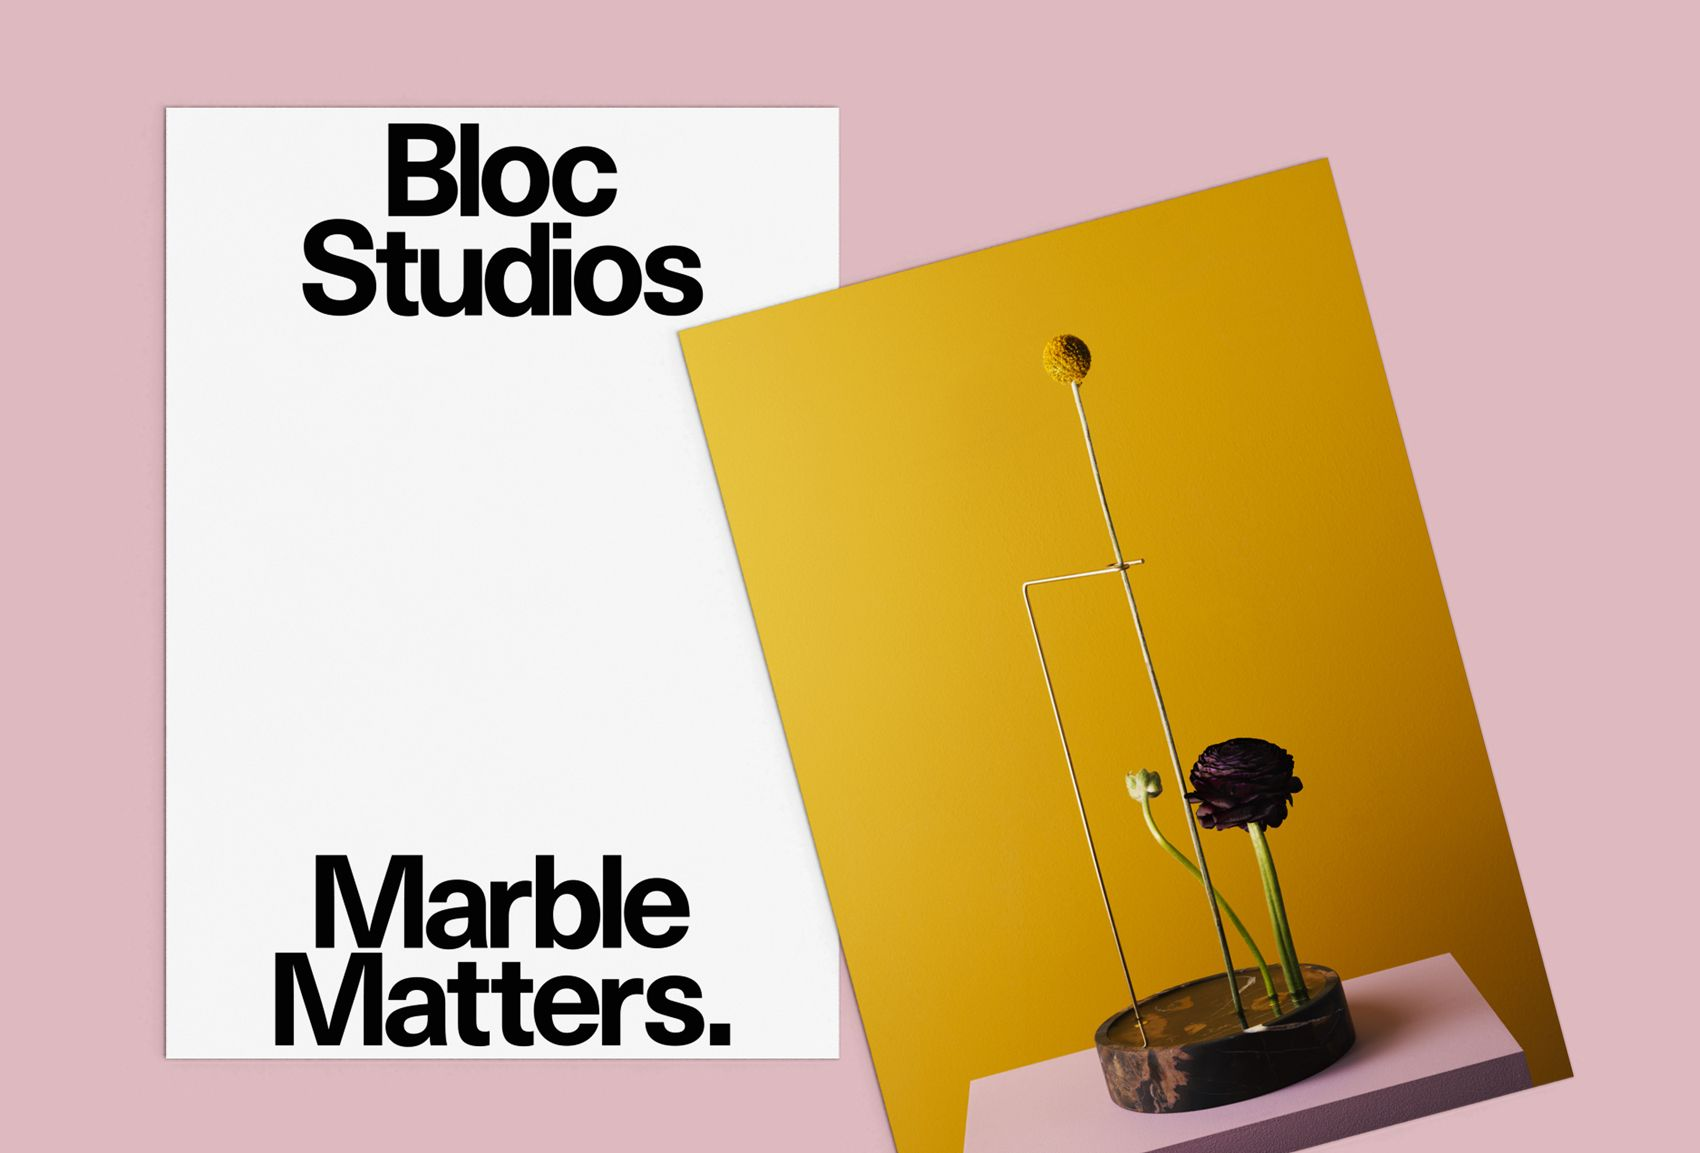 Picture of 2 designed by Studio Flat for the project Bloc Studios. Published on the Visual Journal in date 2 May 2017